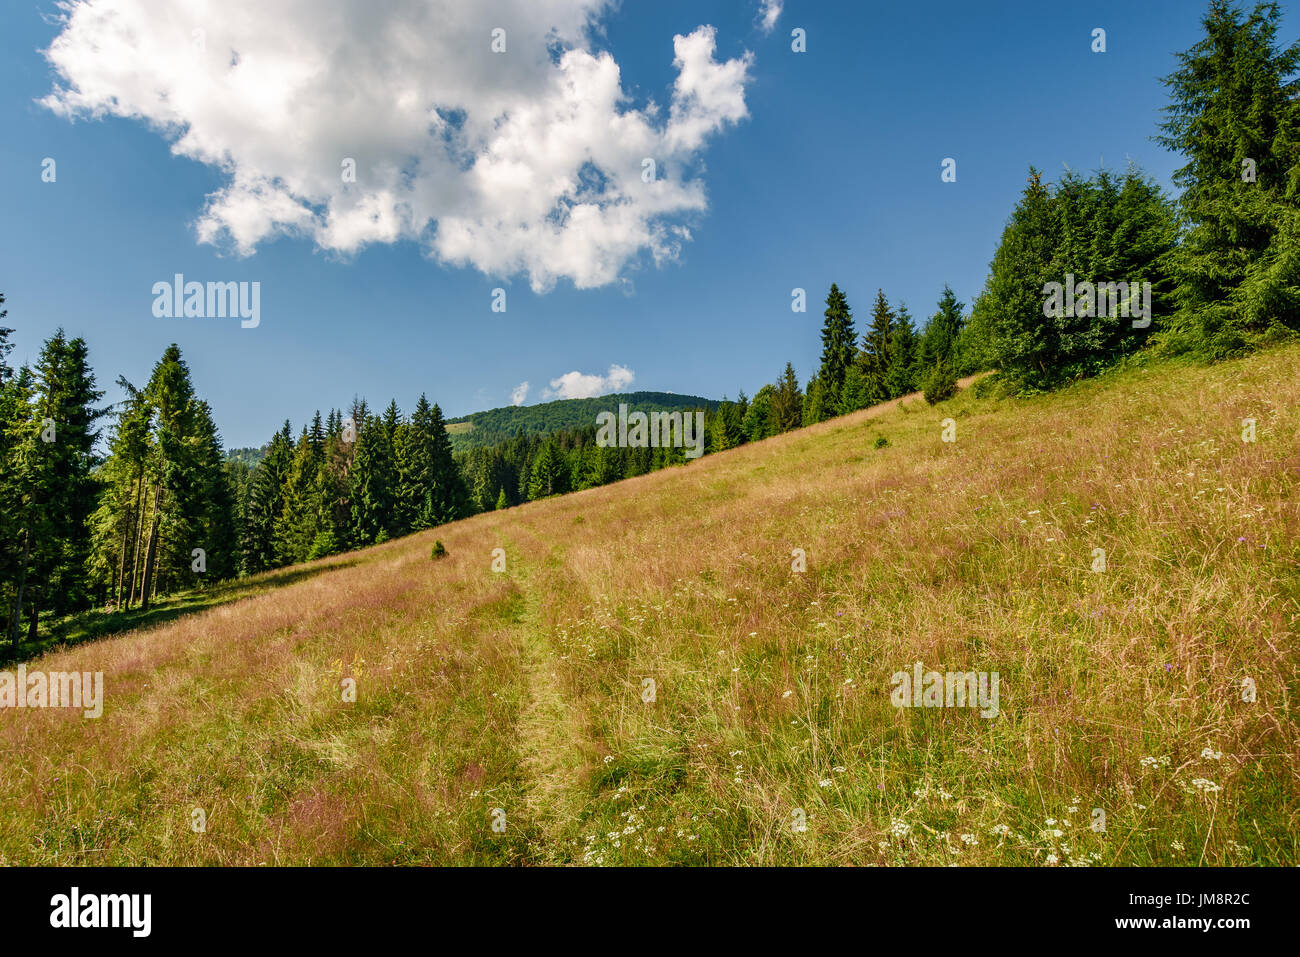 Classic Carpathian landscape. Conifer forest on hillside meadow of mountain ridge. Fresh and green trees under blue sky with clouds - Stock Image